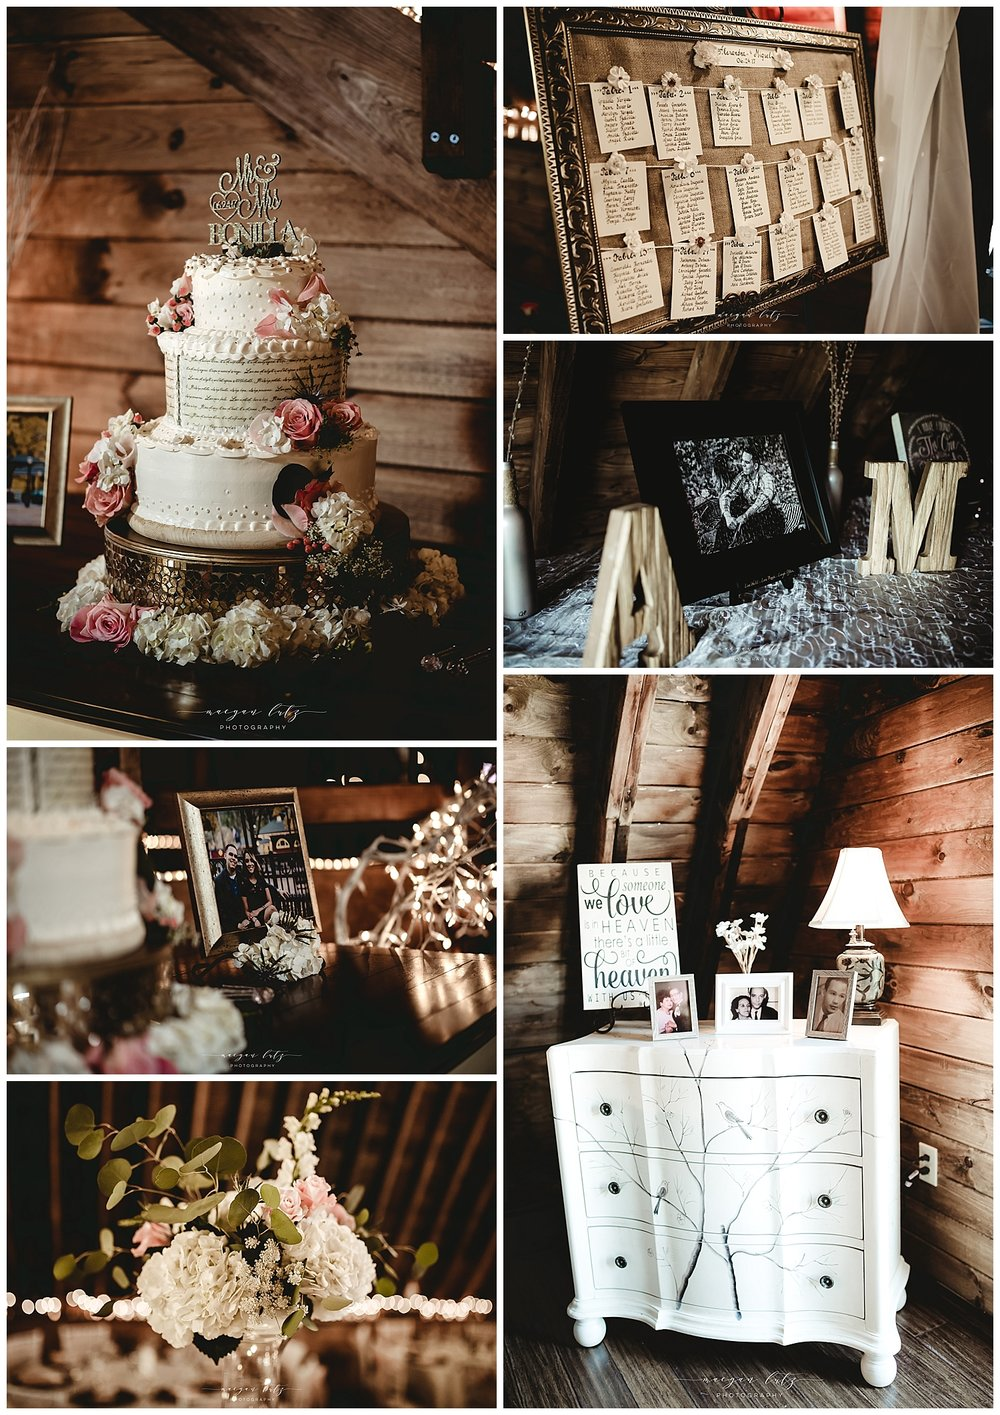 Barn wedding reception at The Barn at Glistening Pond, Falls PA by Photographer in NEPA